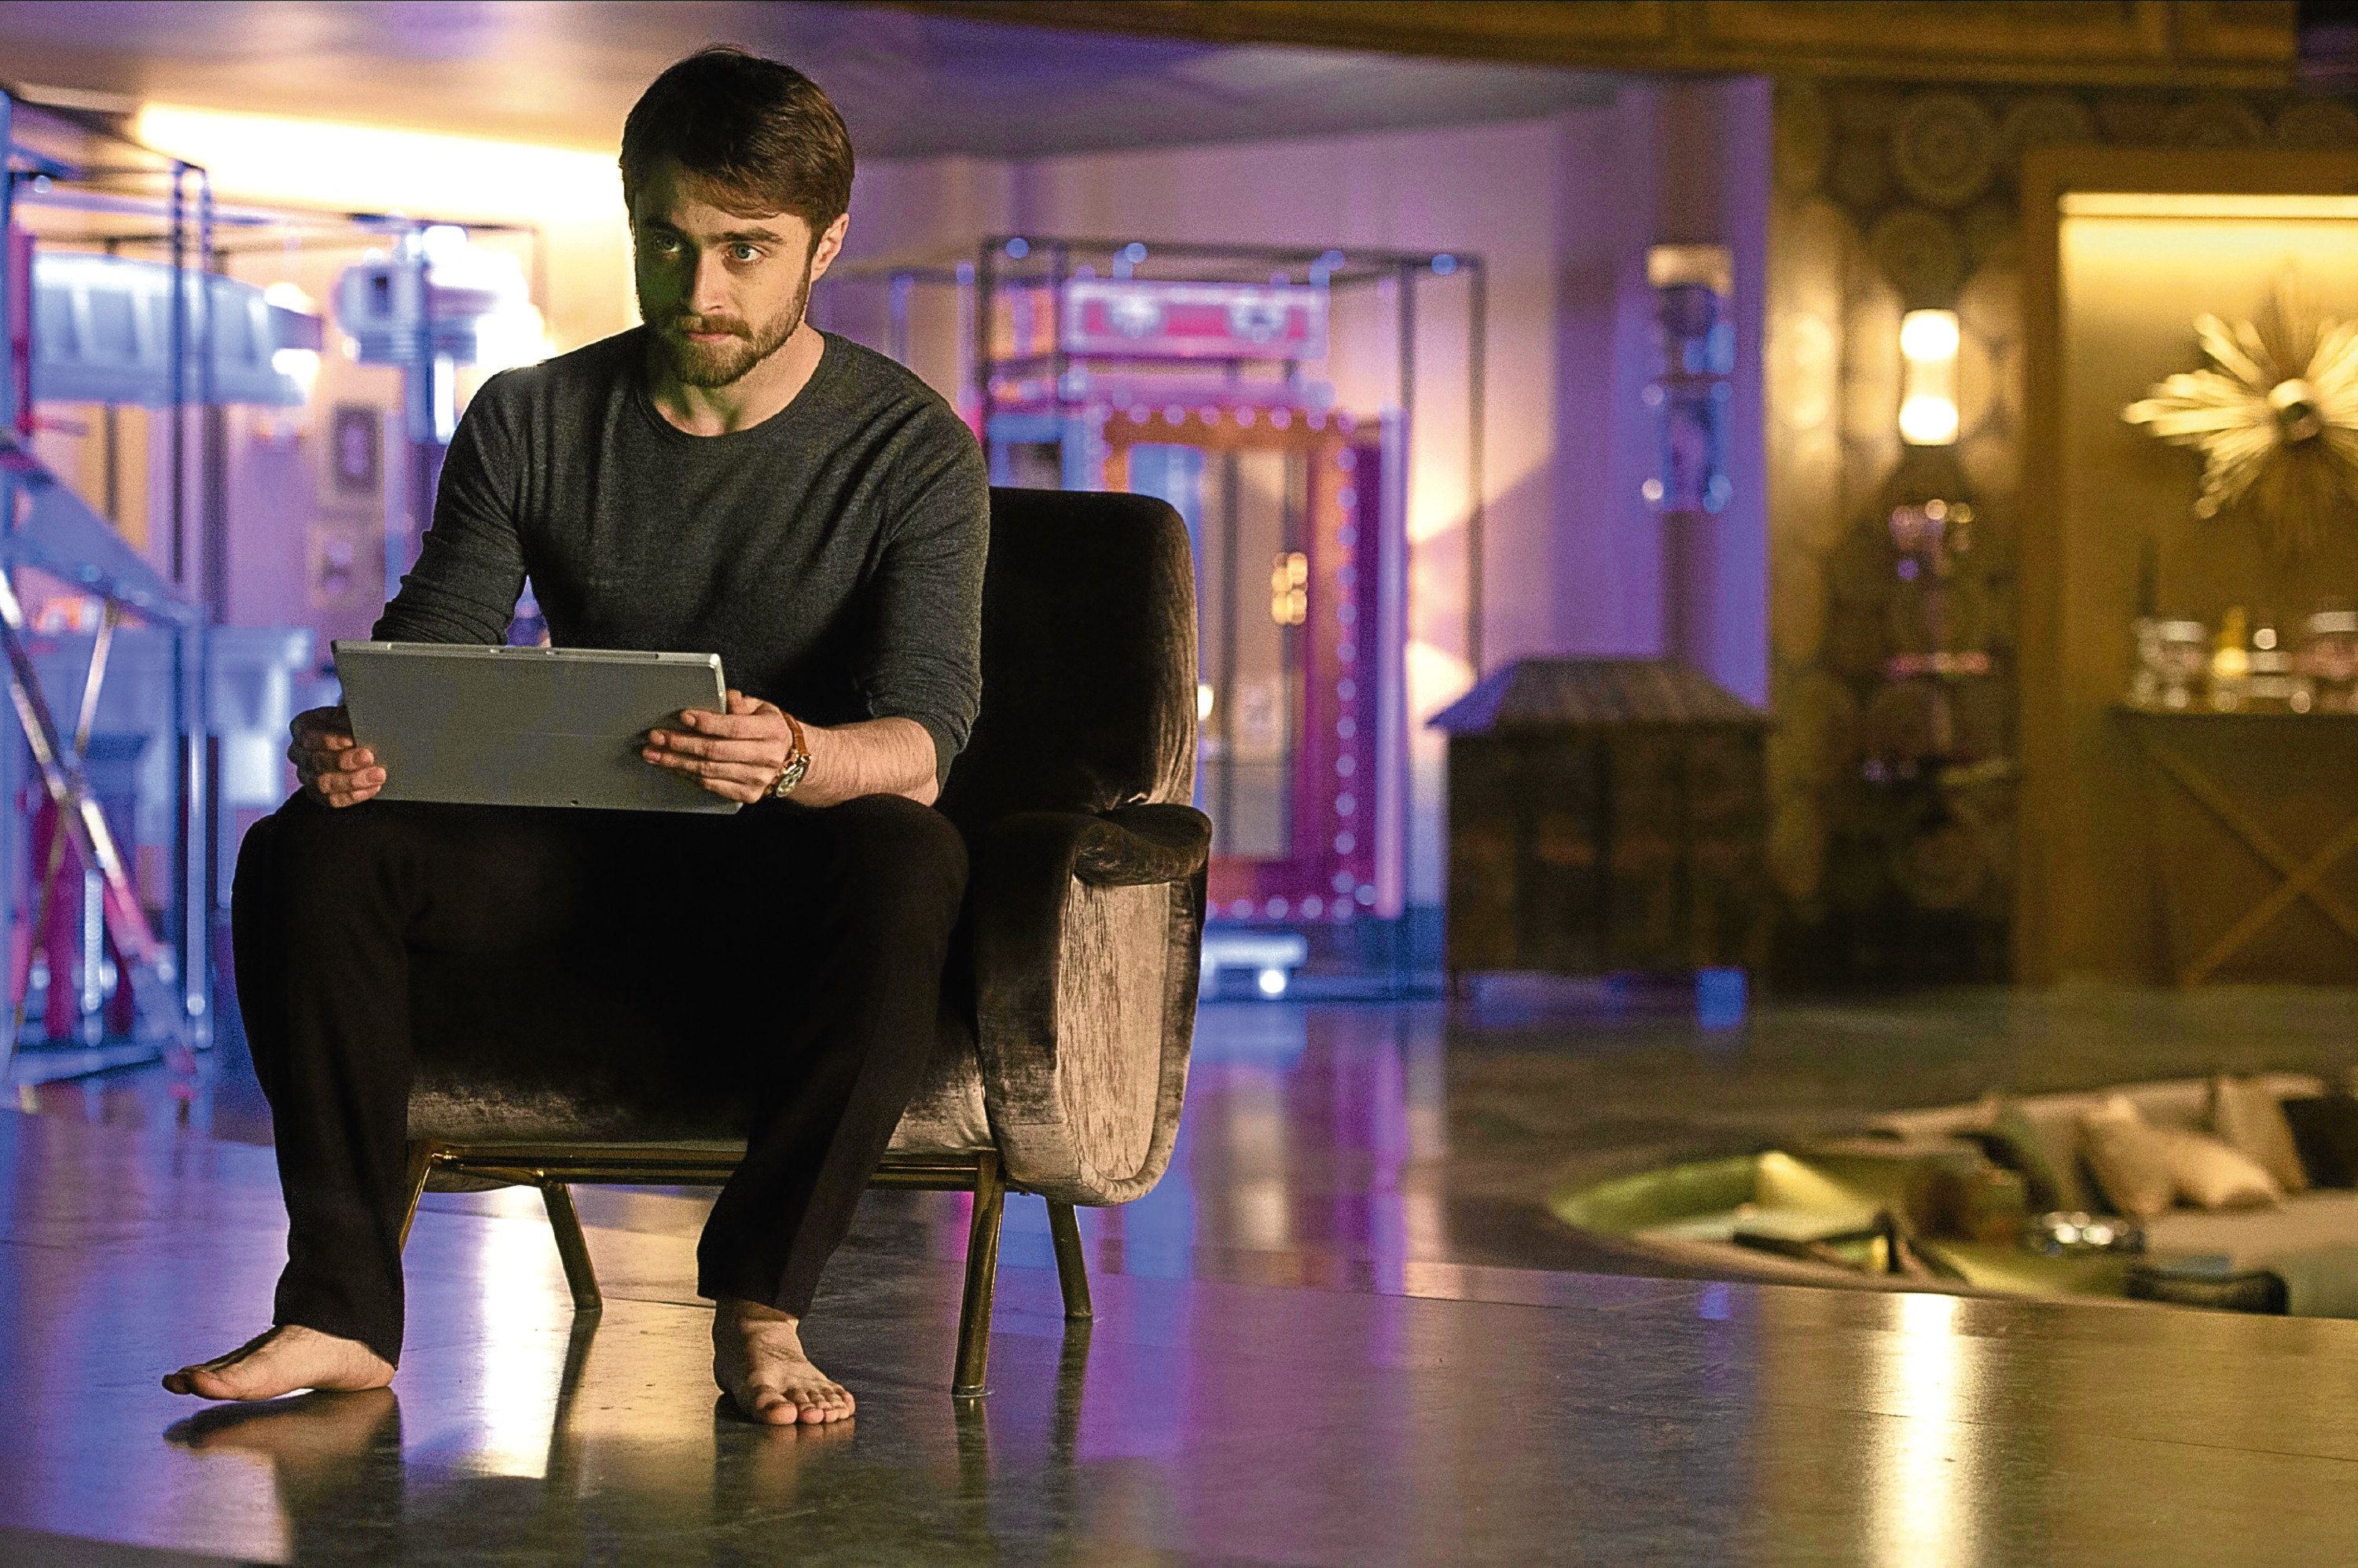 DANIEL RADCLIFFE (From Now You See Me 2, directed by JON M. CHU)